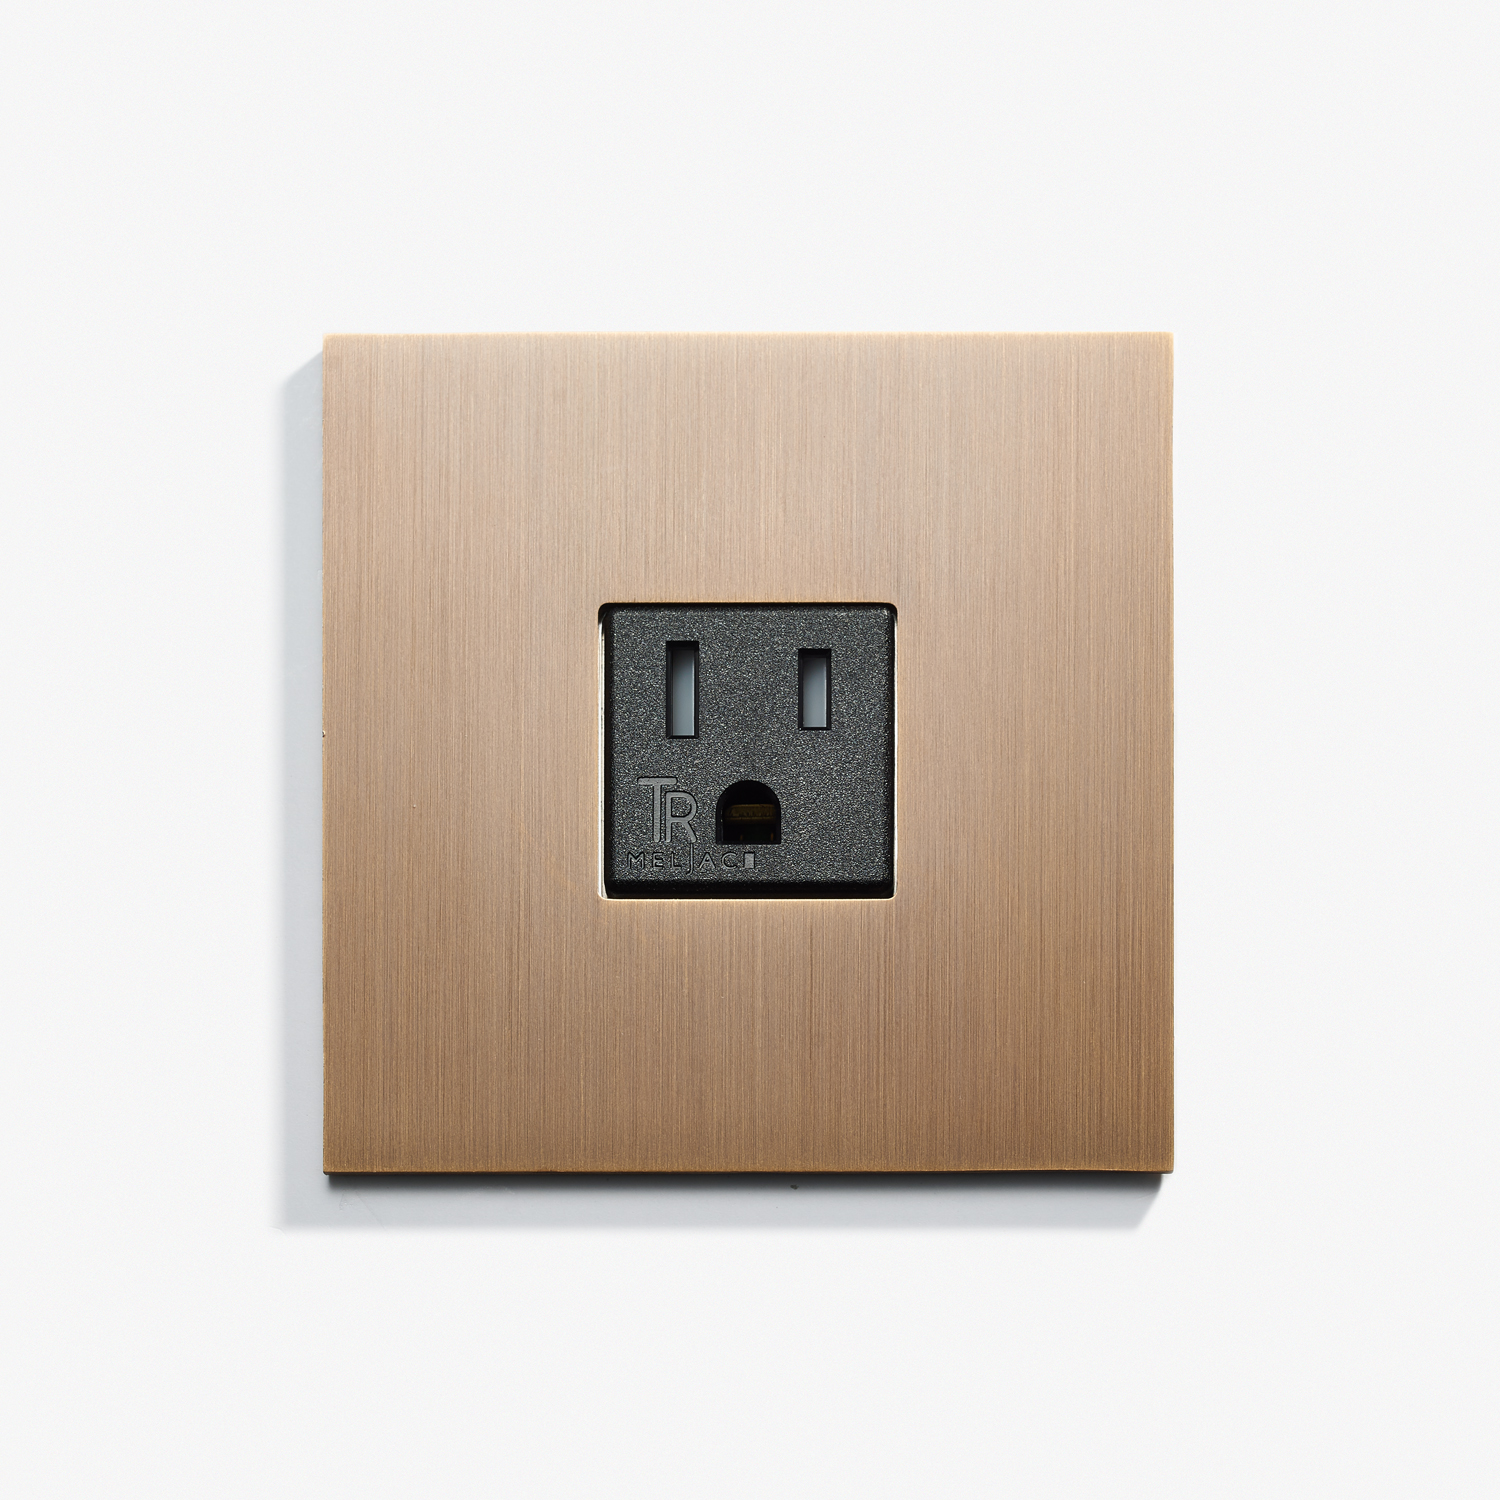 82 x 82 - Single Outlet - Screwless - Straight Edge - Bronze Médaille Allemand.jpg